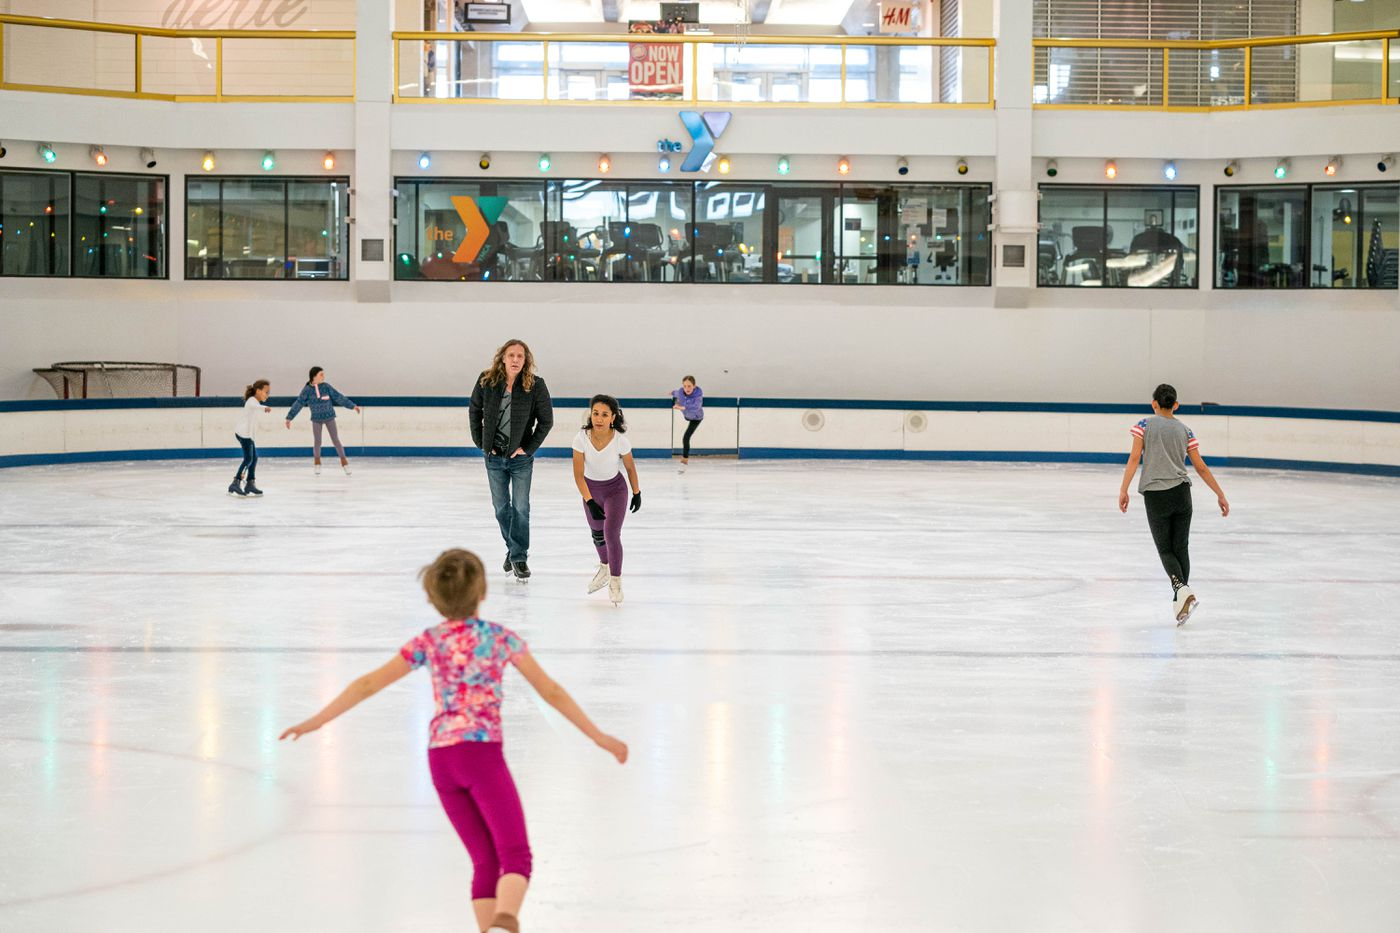 People figure skate at the Dimond Center ice rink on Wednesday, March 18, 2020 in Anchorage. (Loren Holmes / ADN)